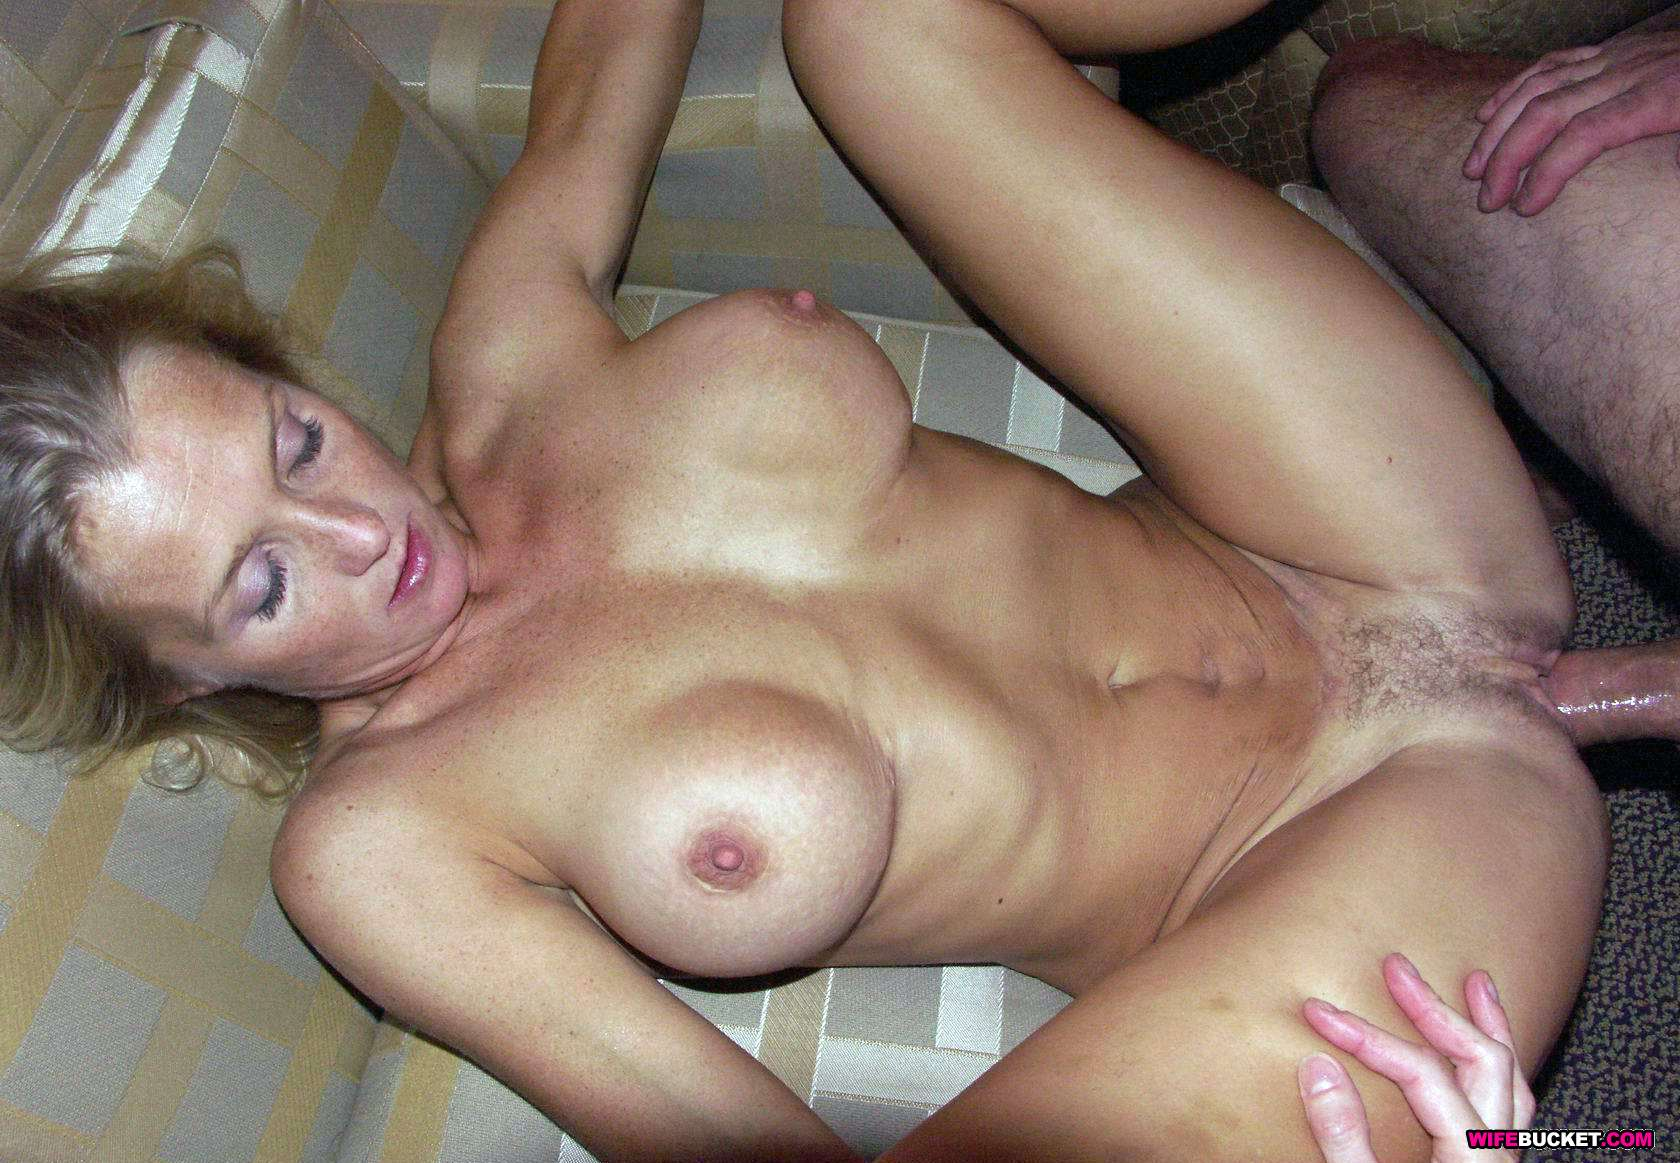 Best swinger wife video ever